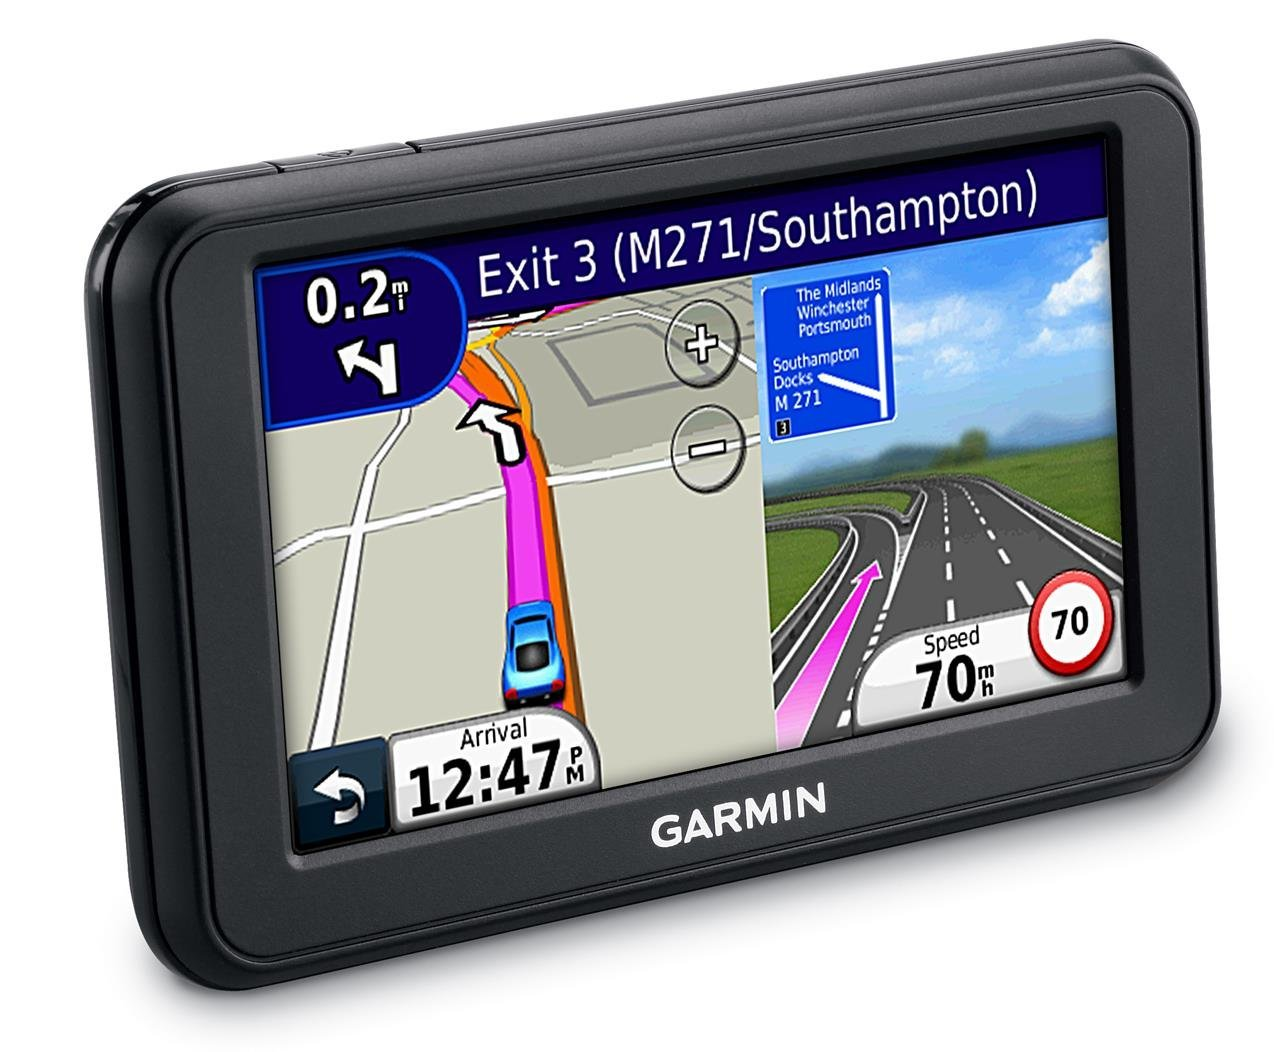 garmin nuvi 50 gps satnav 5 uk western europe maps lane assist speed cams sustuu. Black Bedroom Furniture Sets. Home Design Ideas